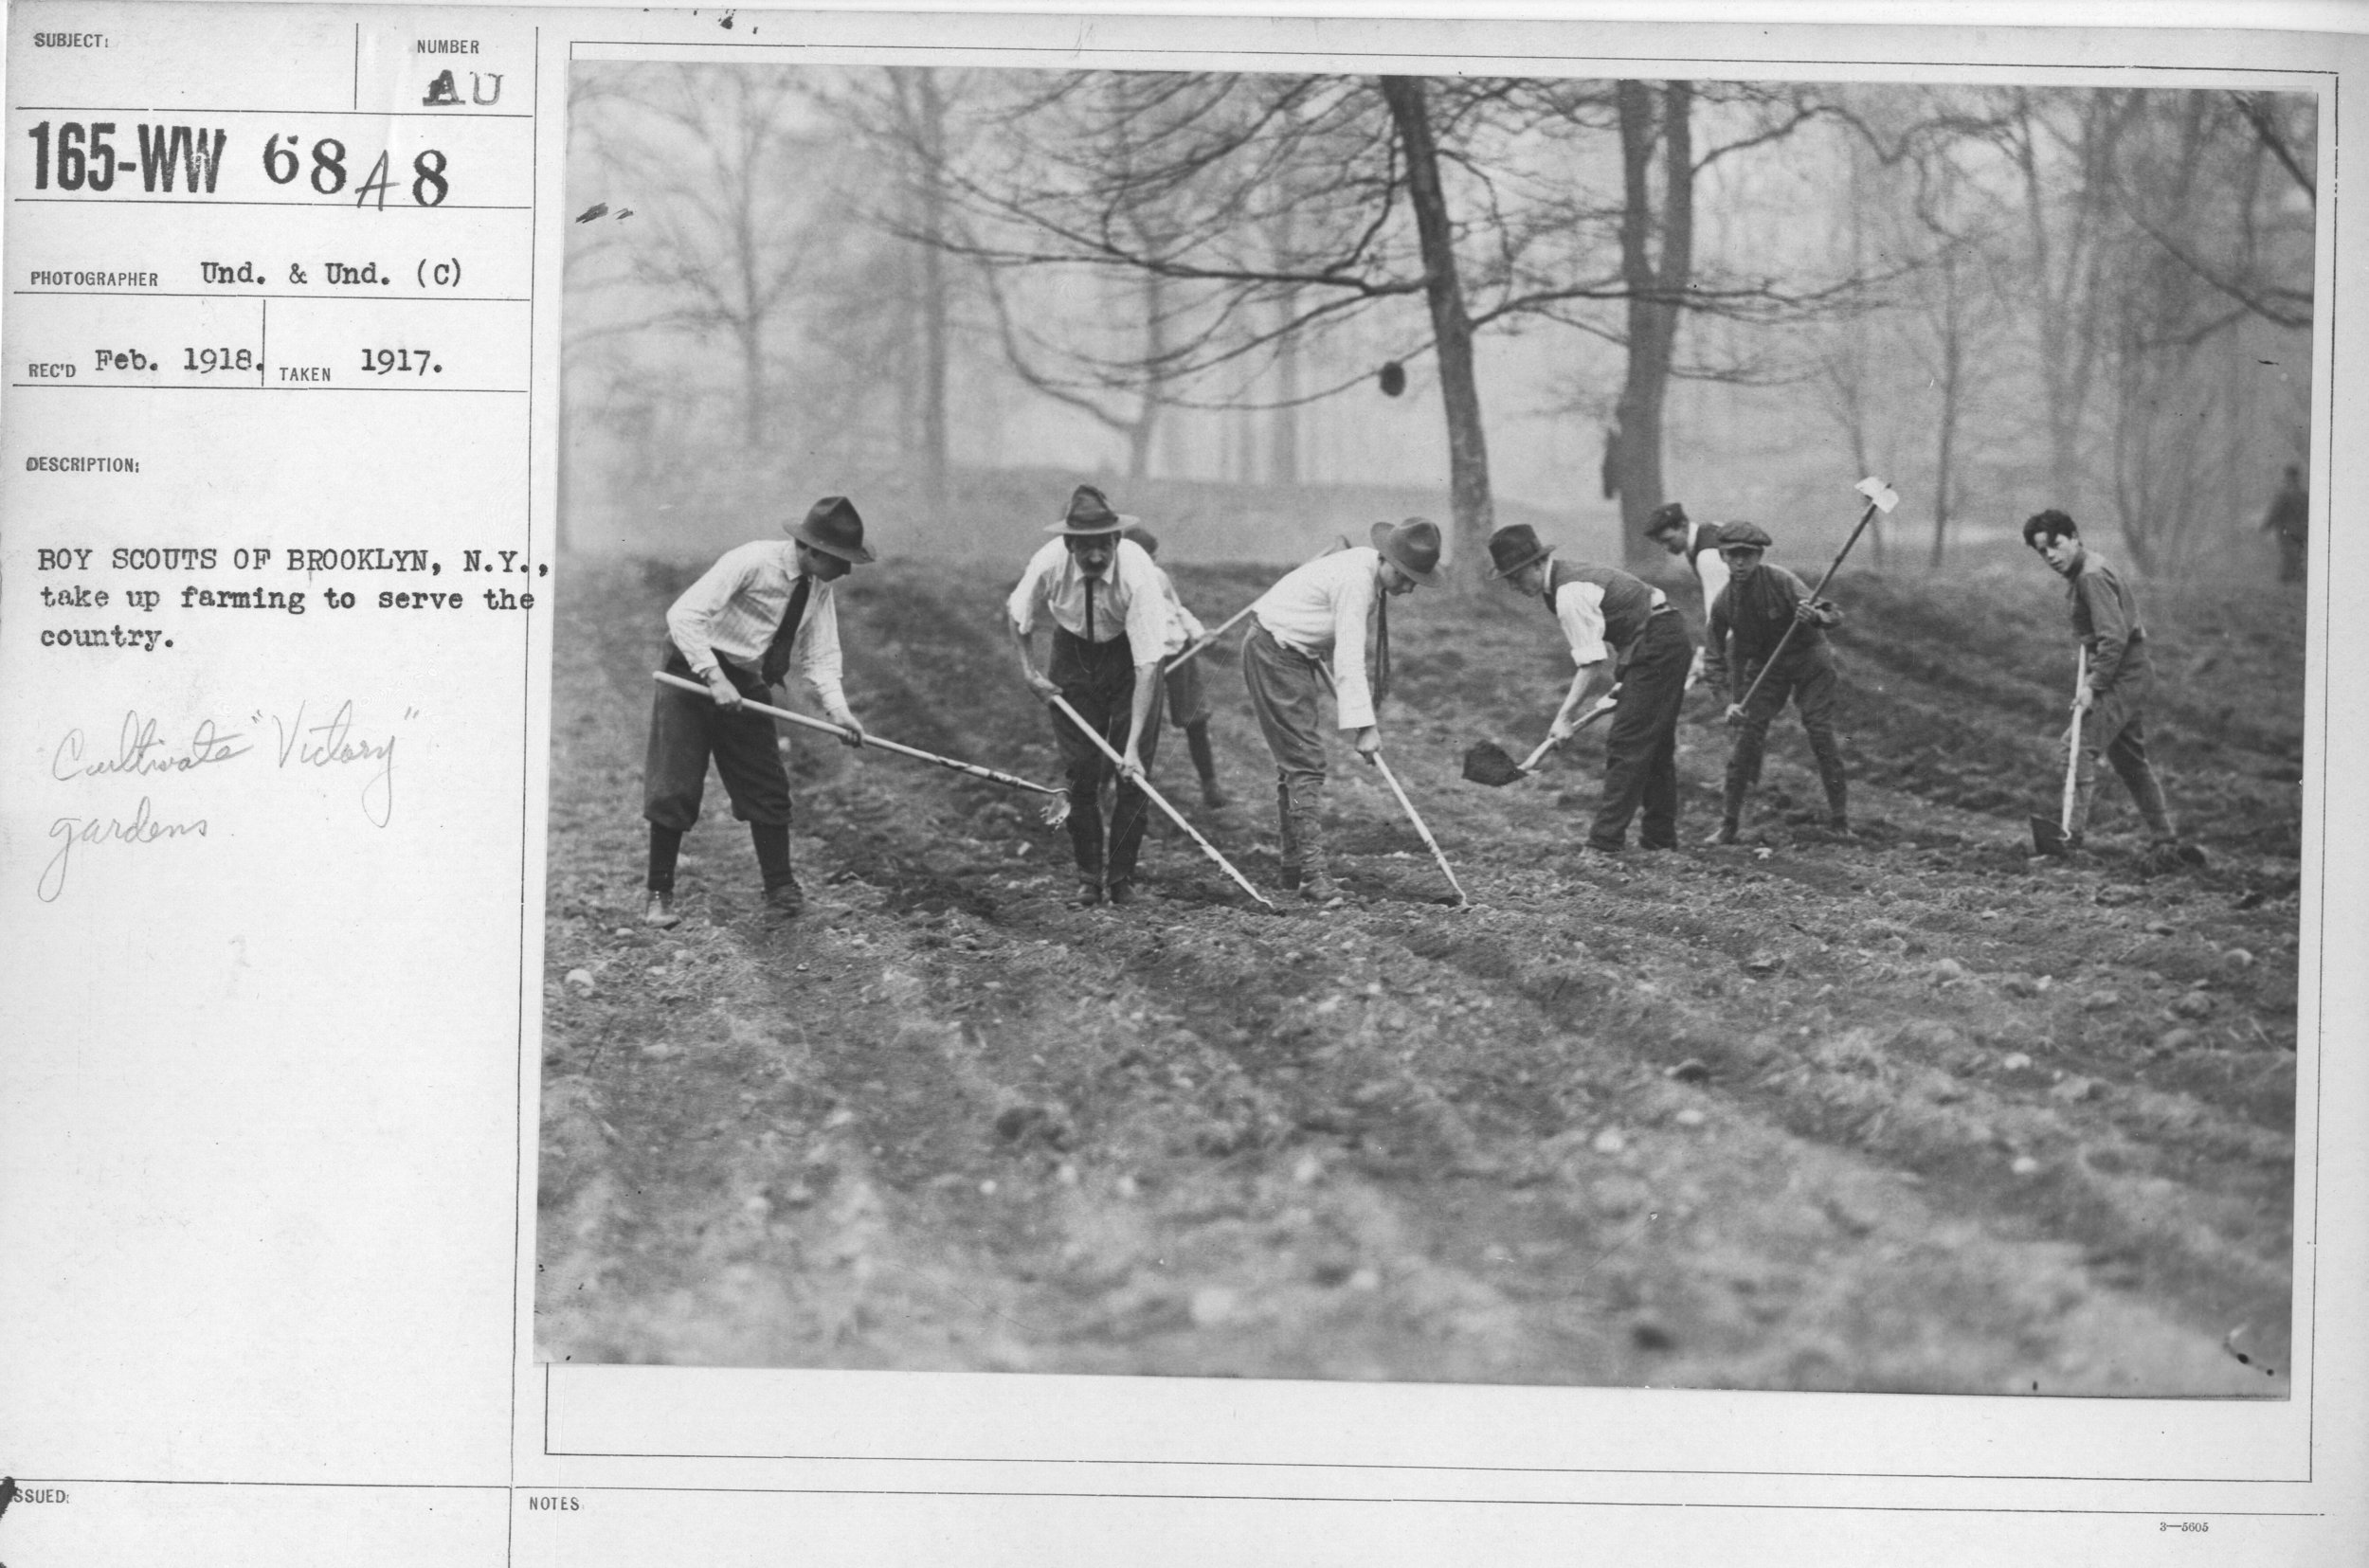 Boy scouts of Brooklyn, New York, dig a victory garden in 1917. Photo via National Archives